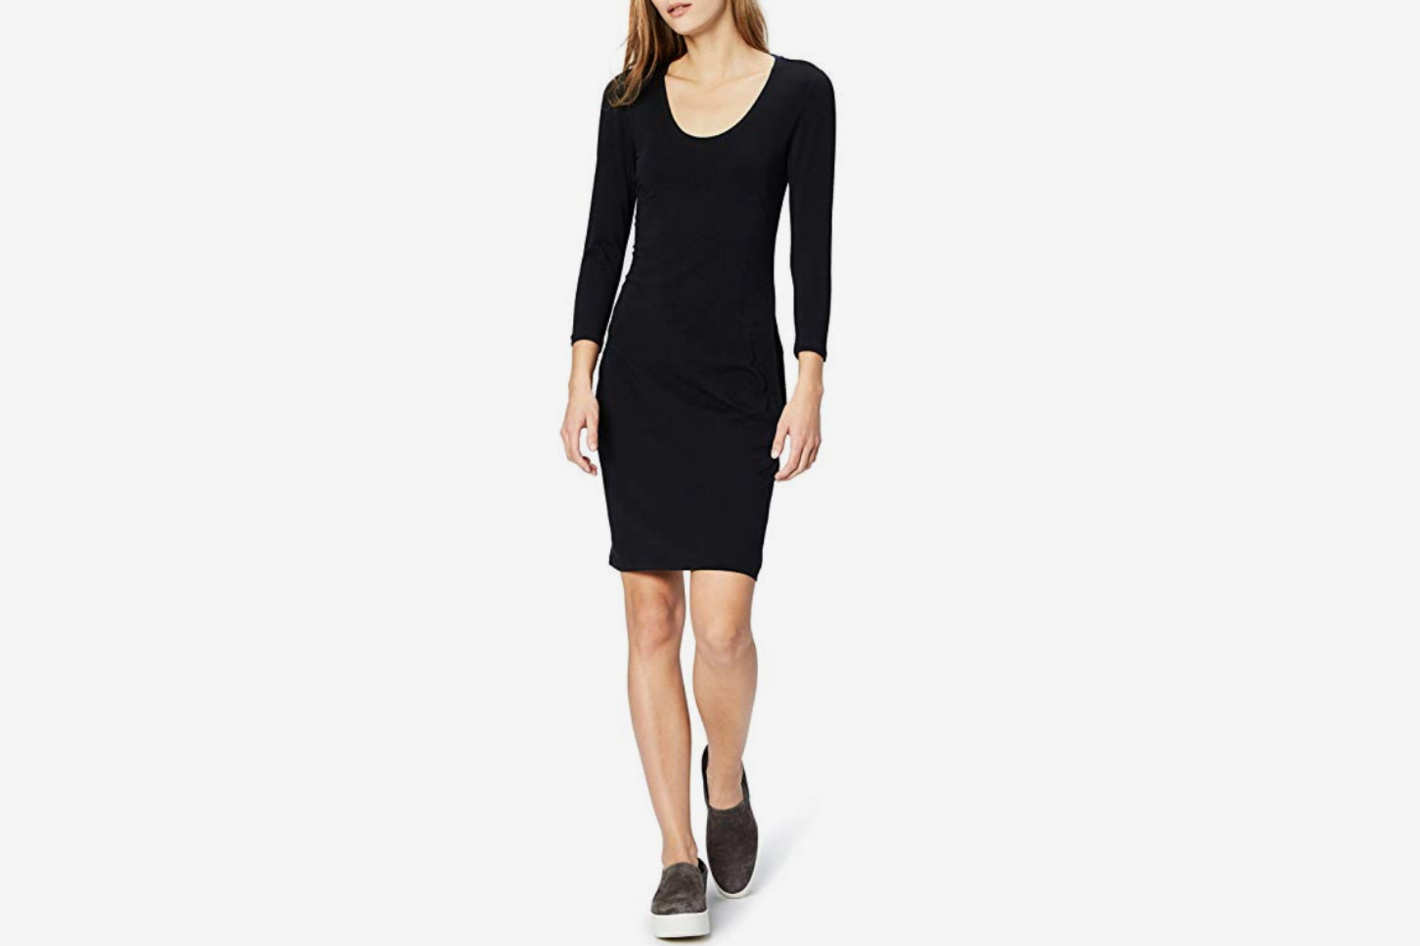 Daily Ritual Women's Stretch Supima Long-Sleeve Dress